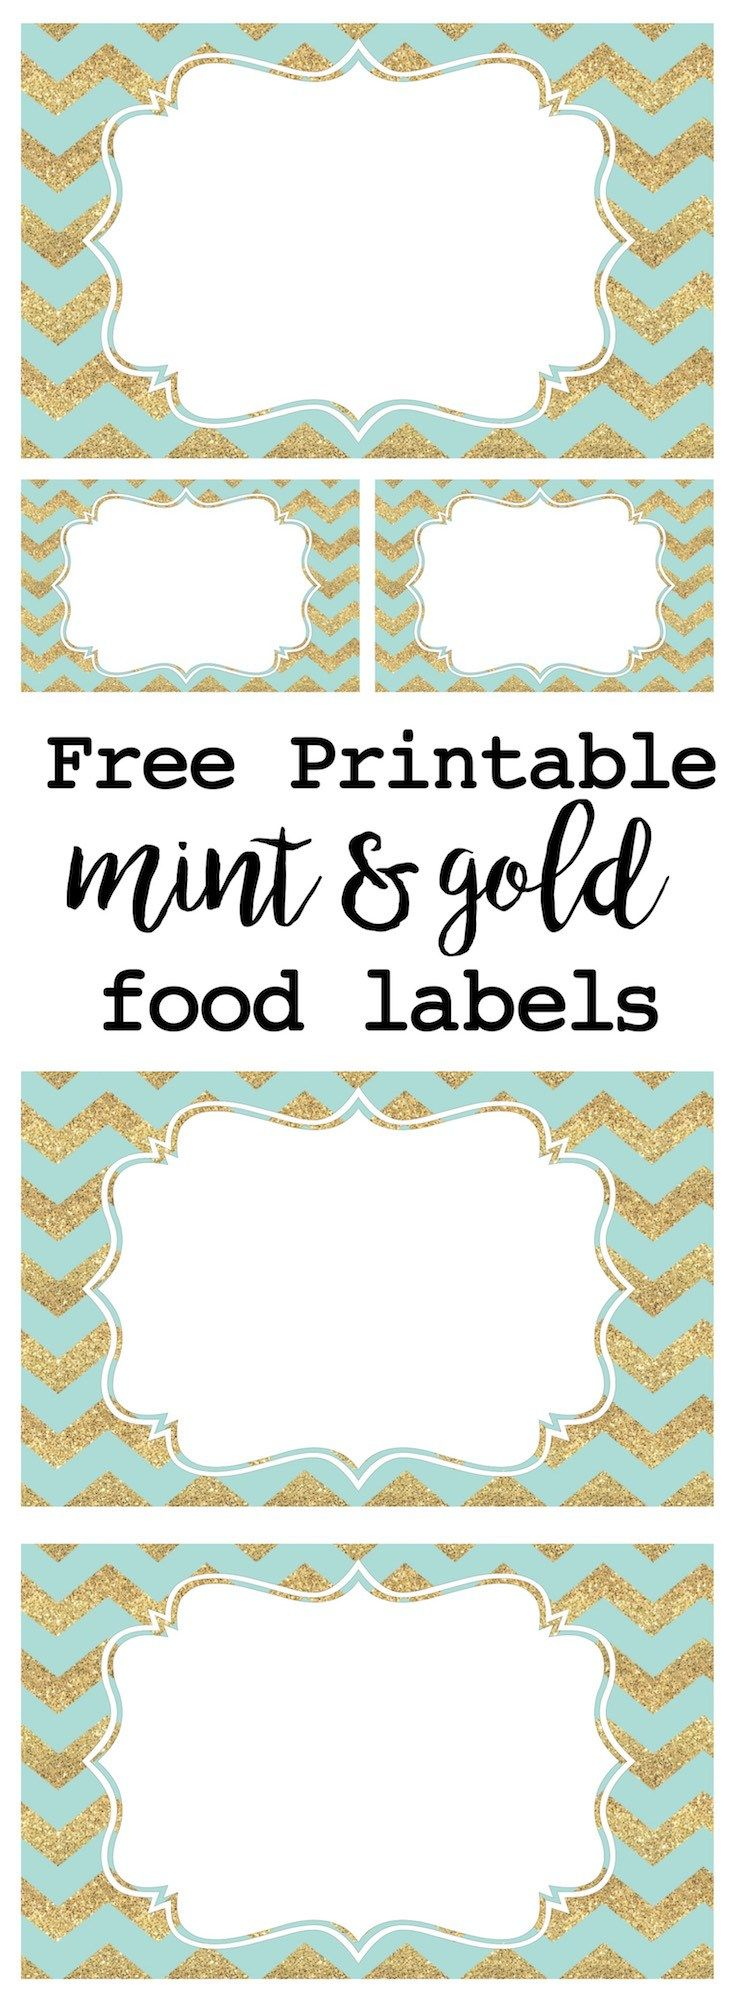 33 best Free Printable Banners images on Pinterest   Free printables ...